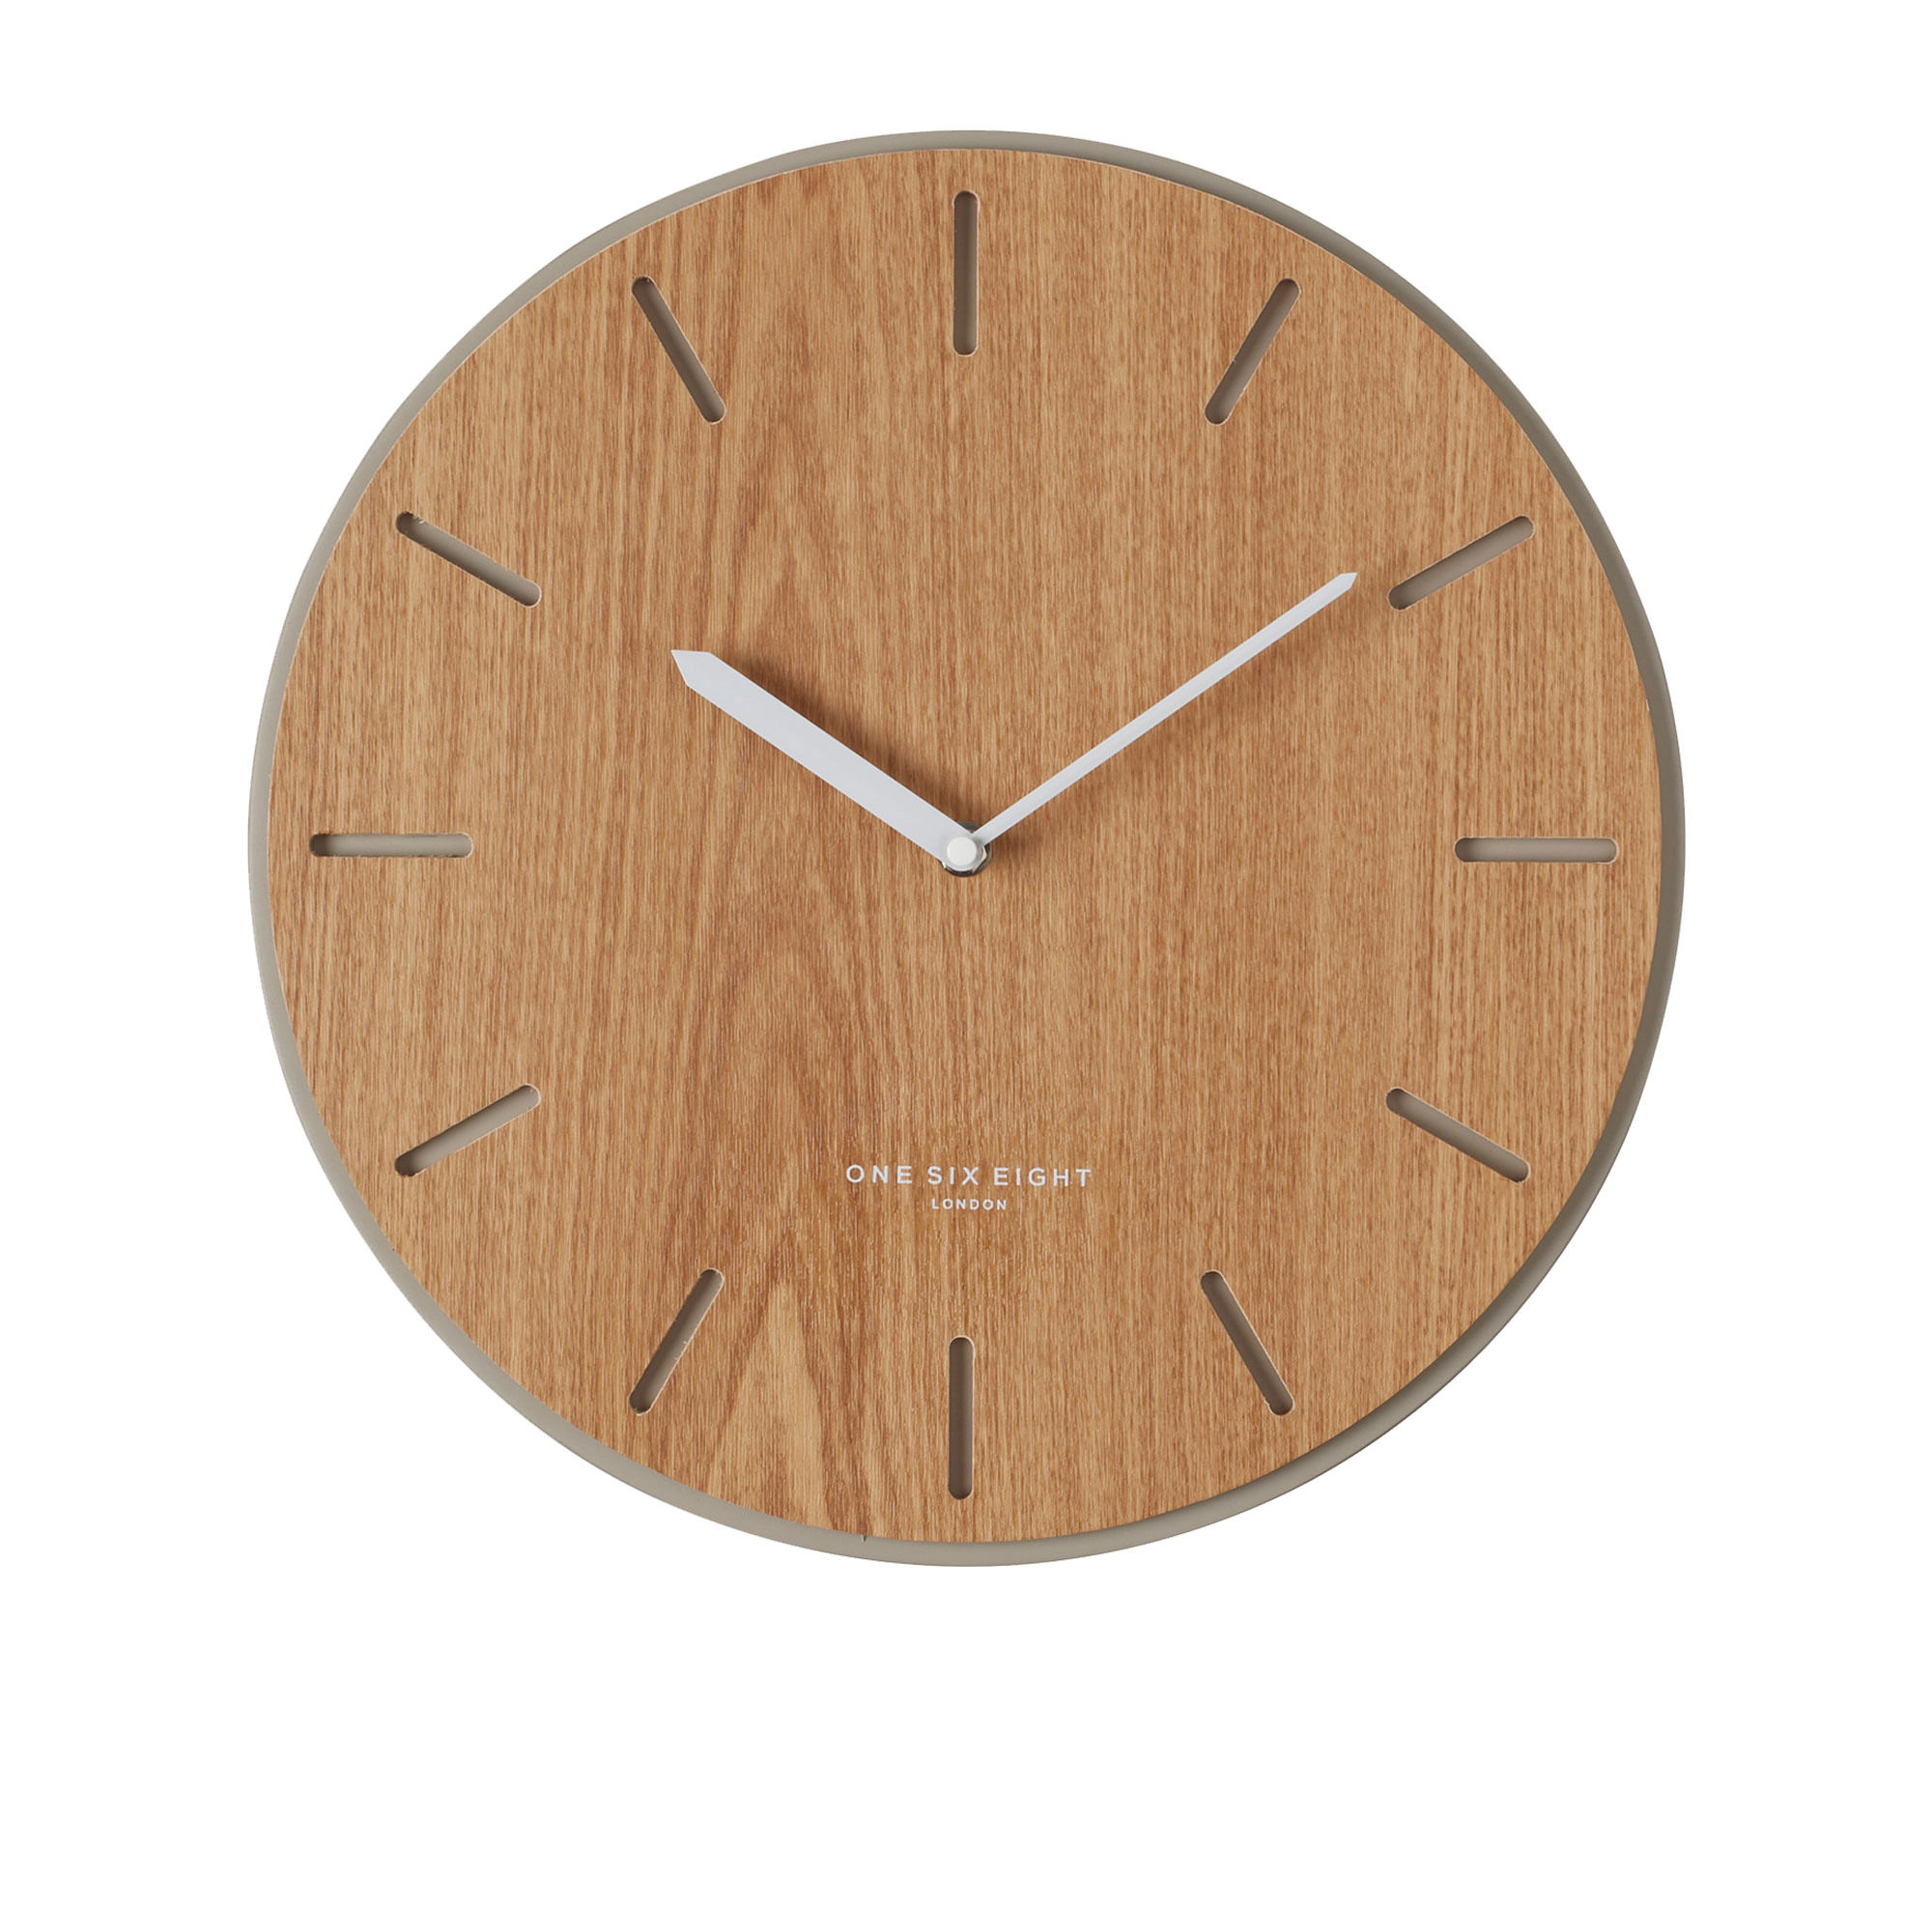 One Six Eight London Gabriel Silent Wall Clock 35cm Concrete